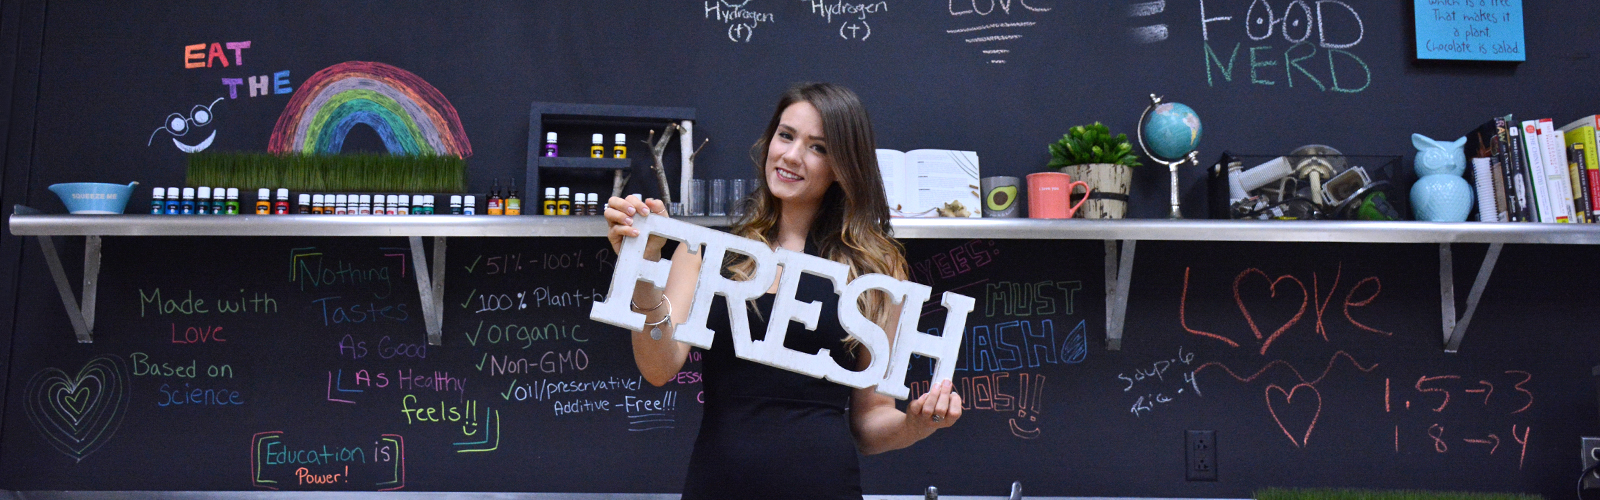 Sharon Cryan, founder and owner of Food Nerd, stands in front of her inspiration board holding an adjective that sums up her product. <span class='image-credits'>Dan Cappellazzo</span>